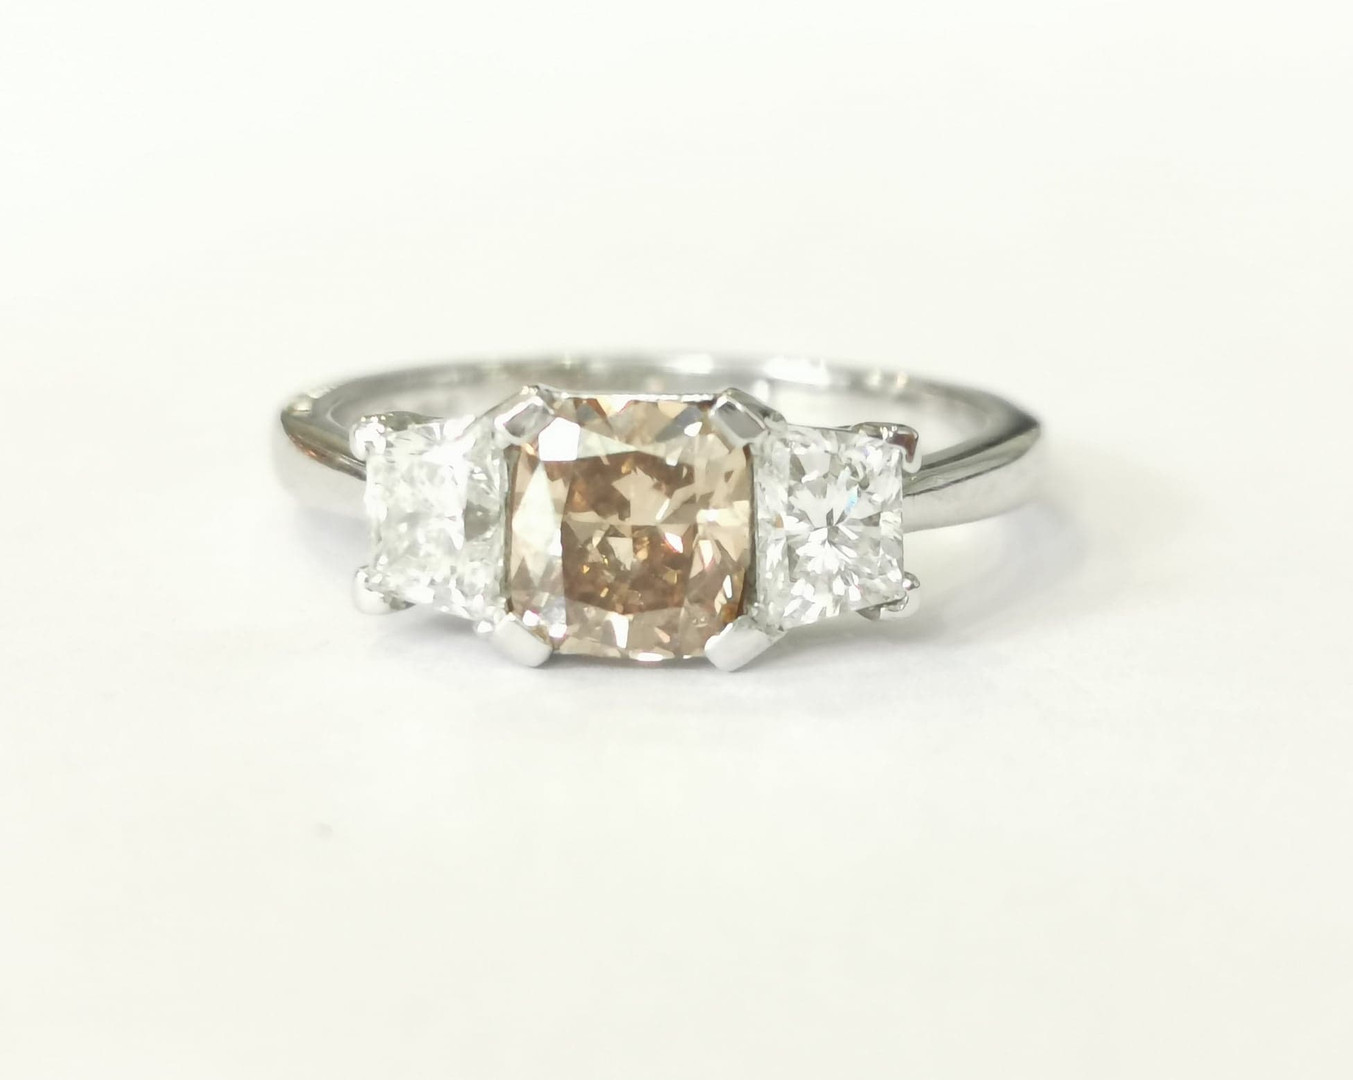 42032 Platinum 1.05ct brown diamond + 0.80ct white diamonds £9750.00